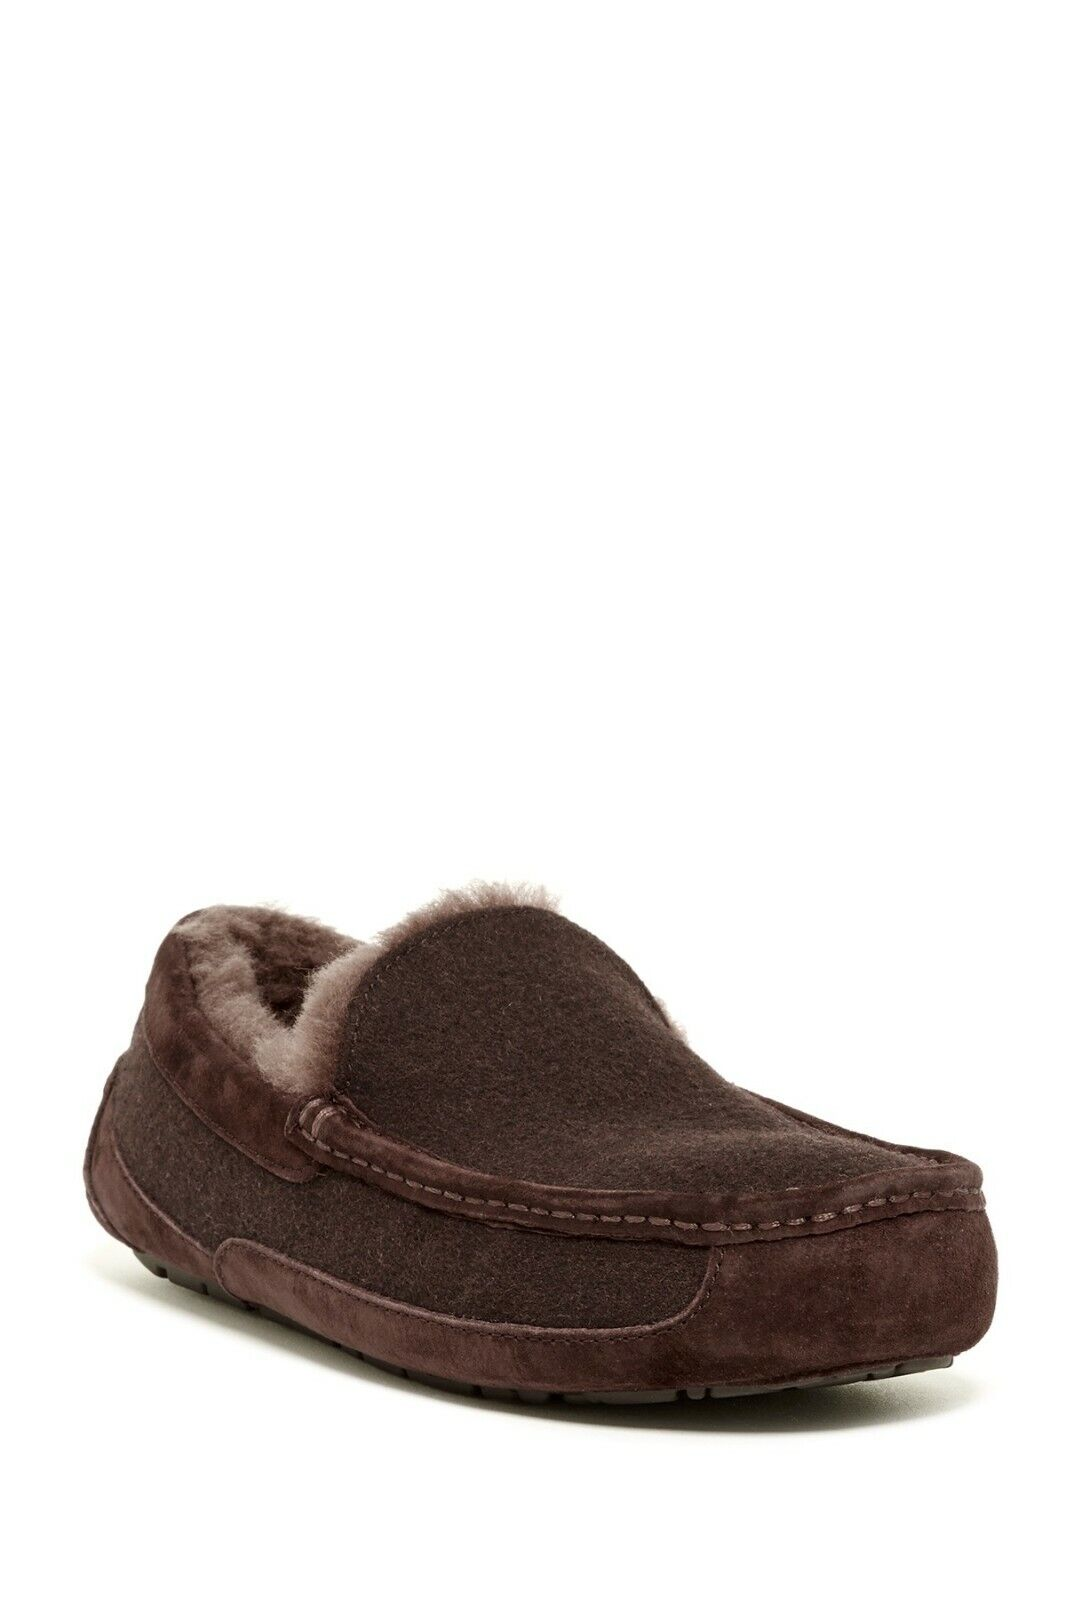 UGG Mens Ascot Wool Slippers - BRAND NEW - Suede Accents - H